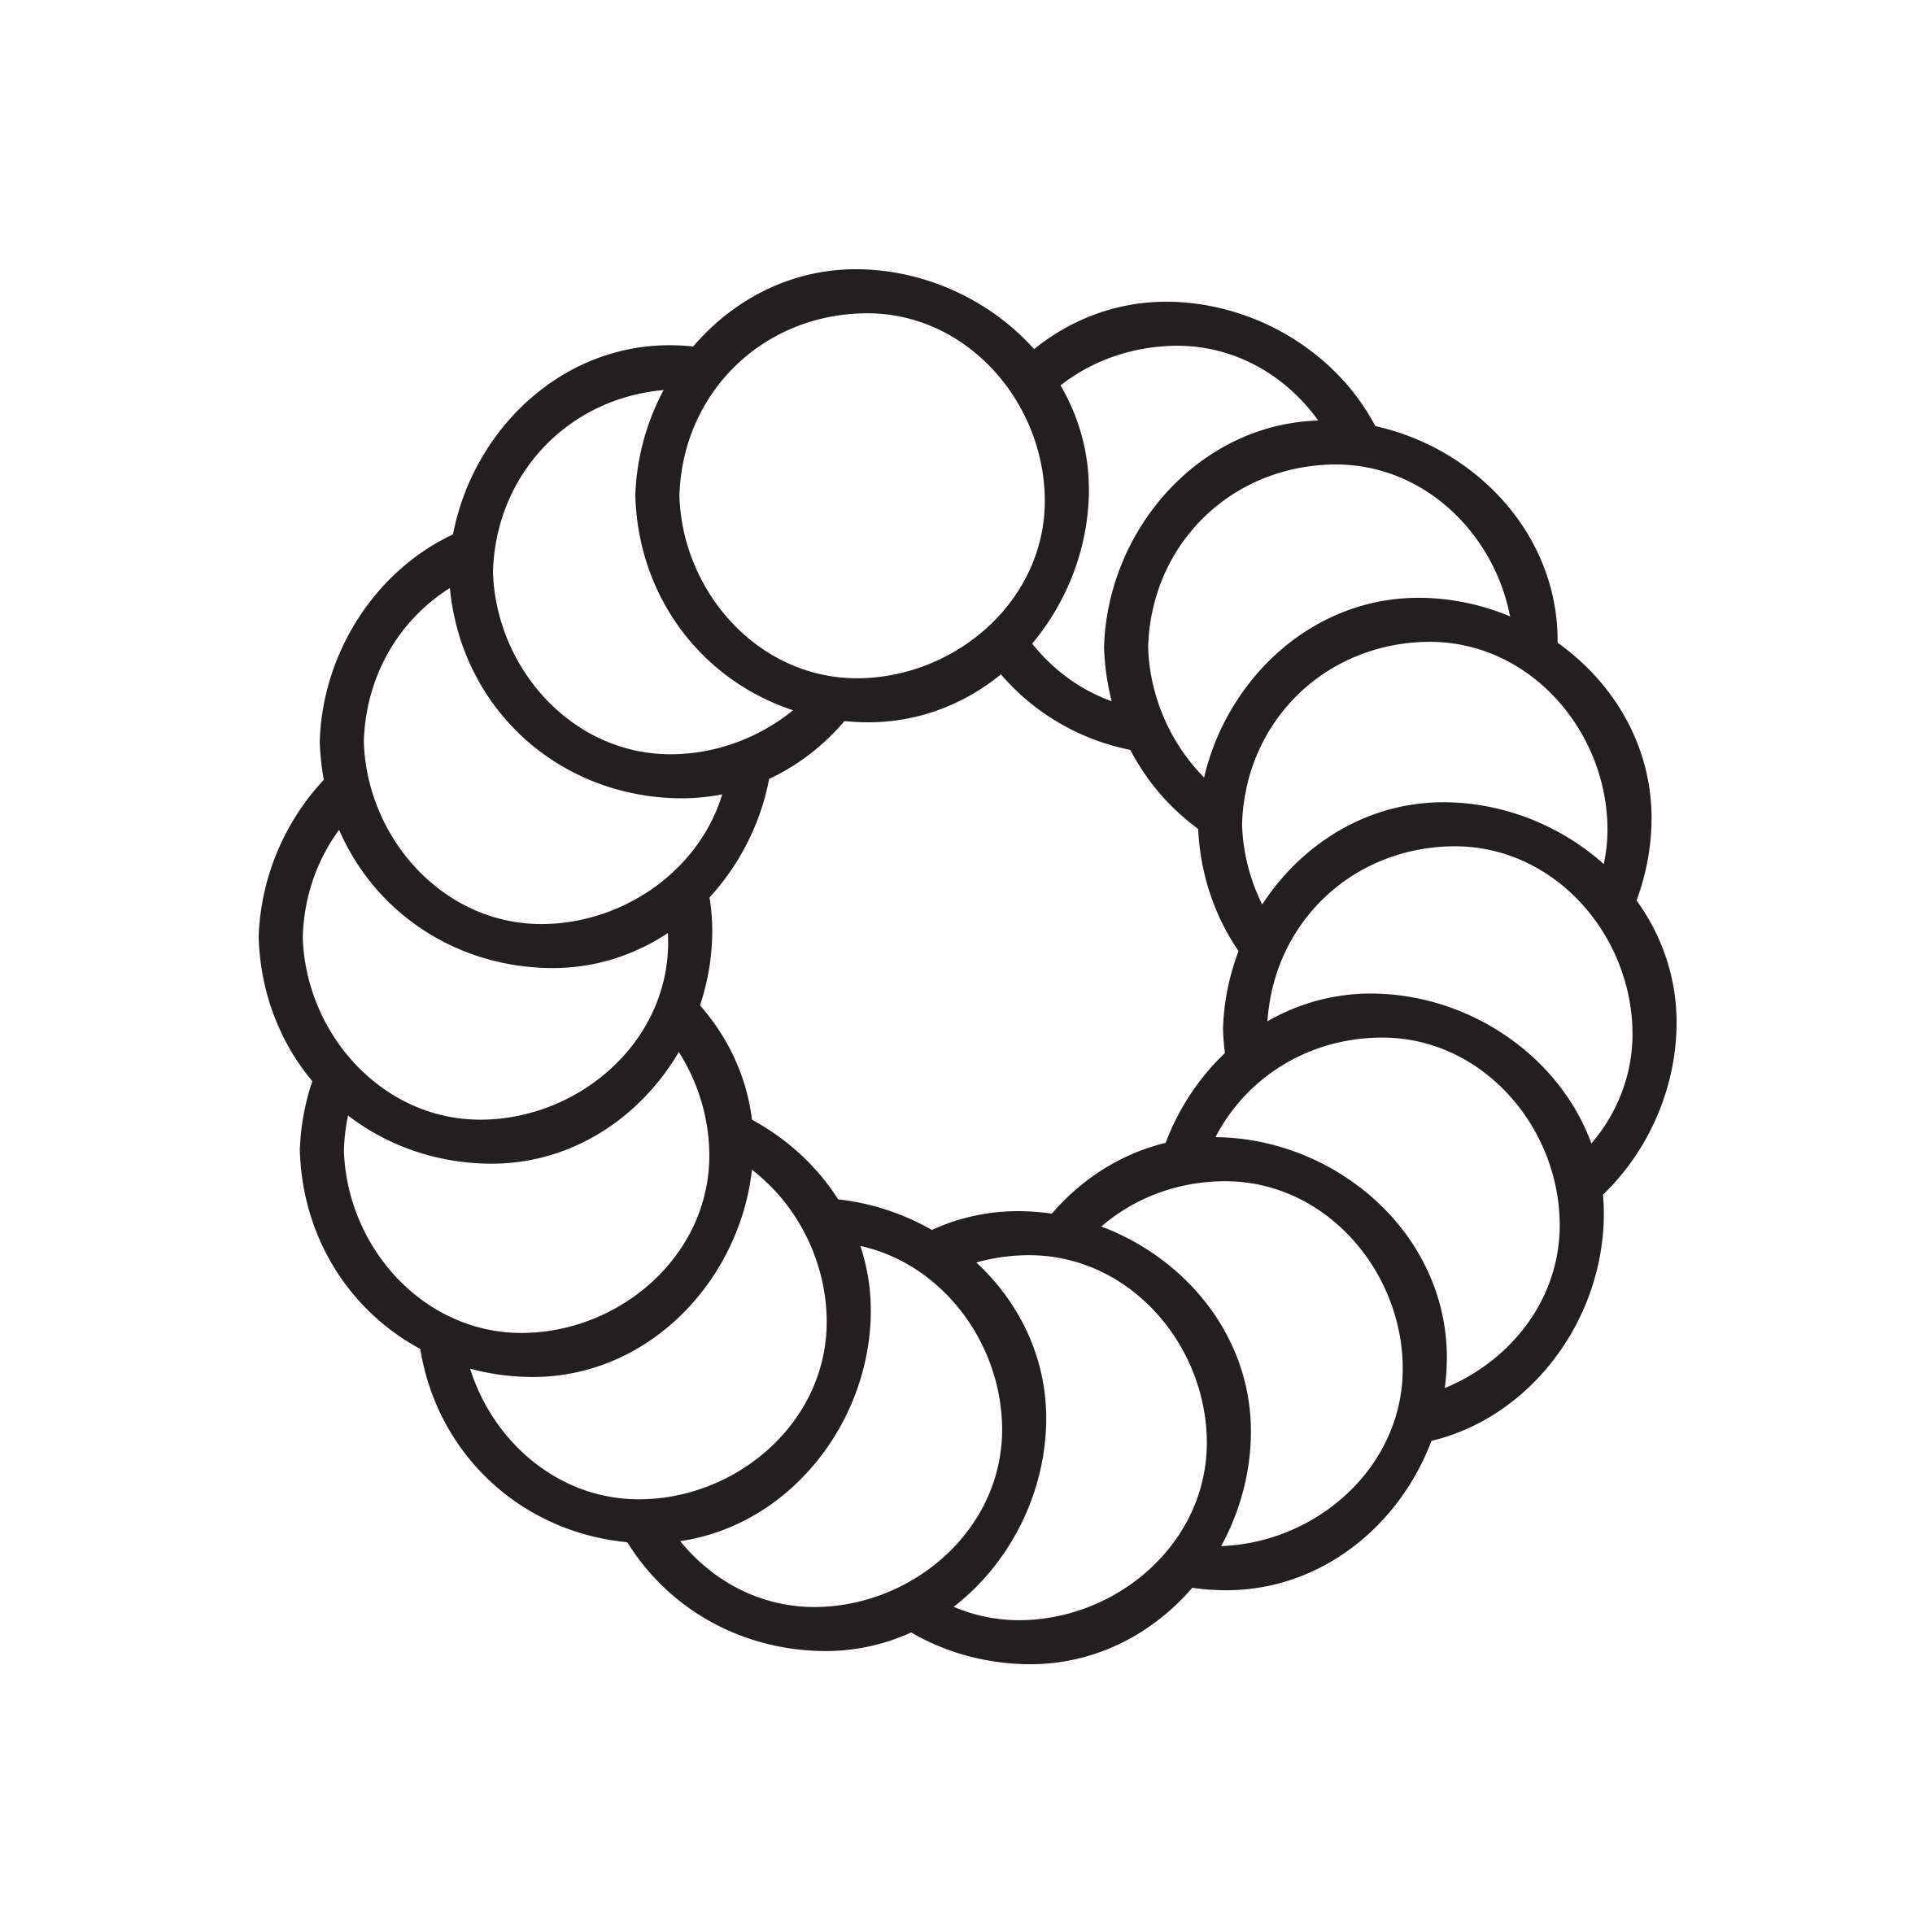 MULTIPLE-CURCLES.png